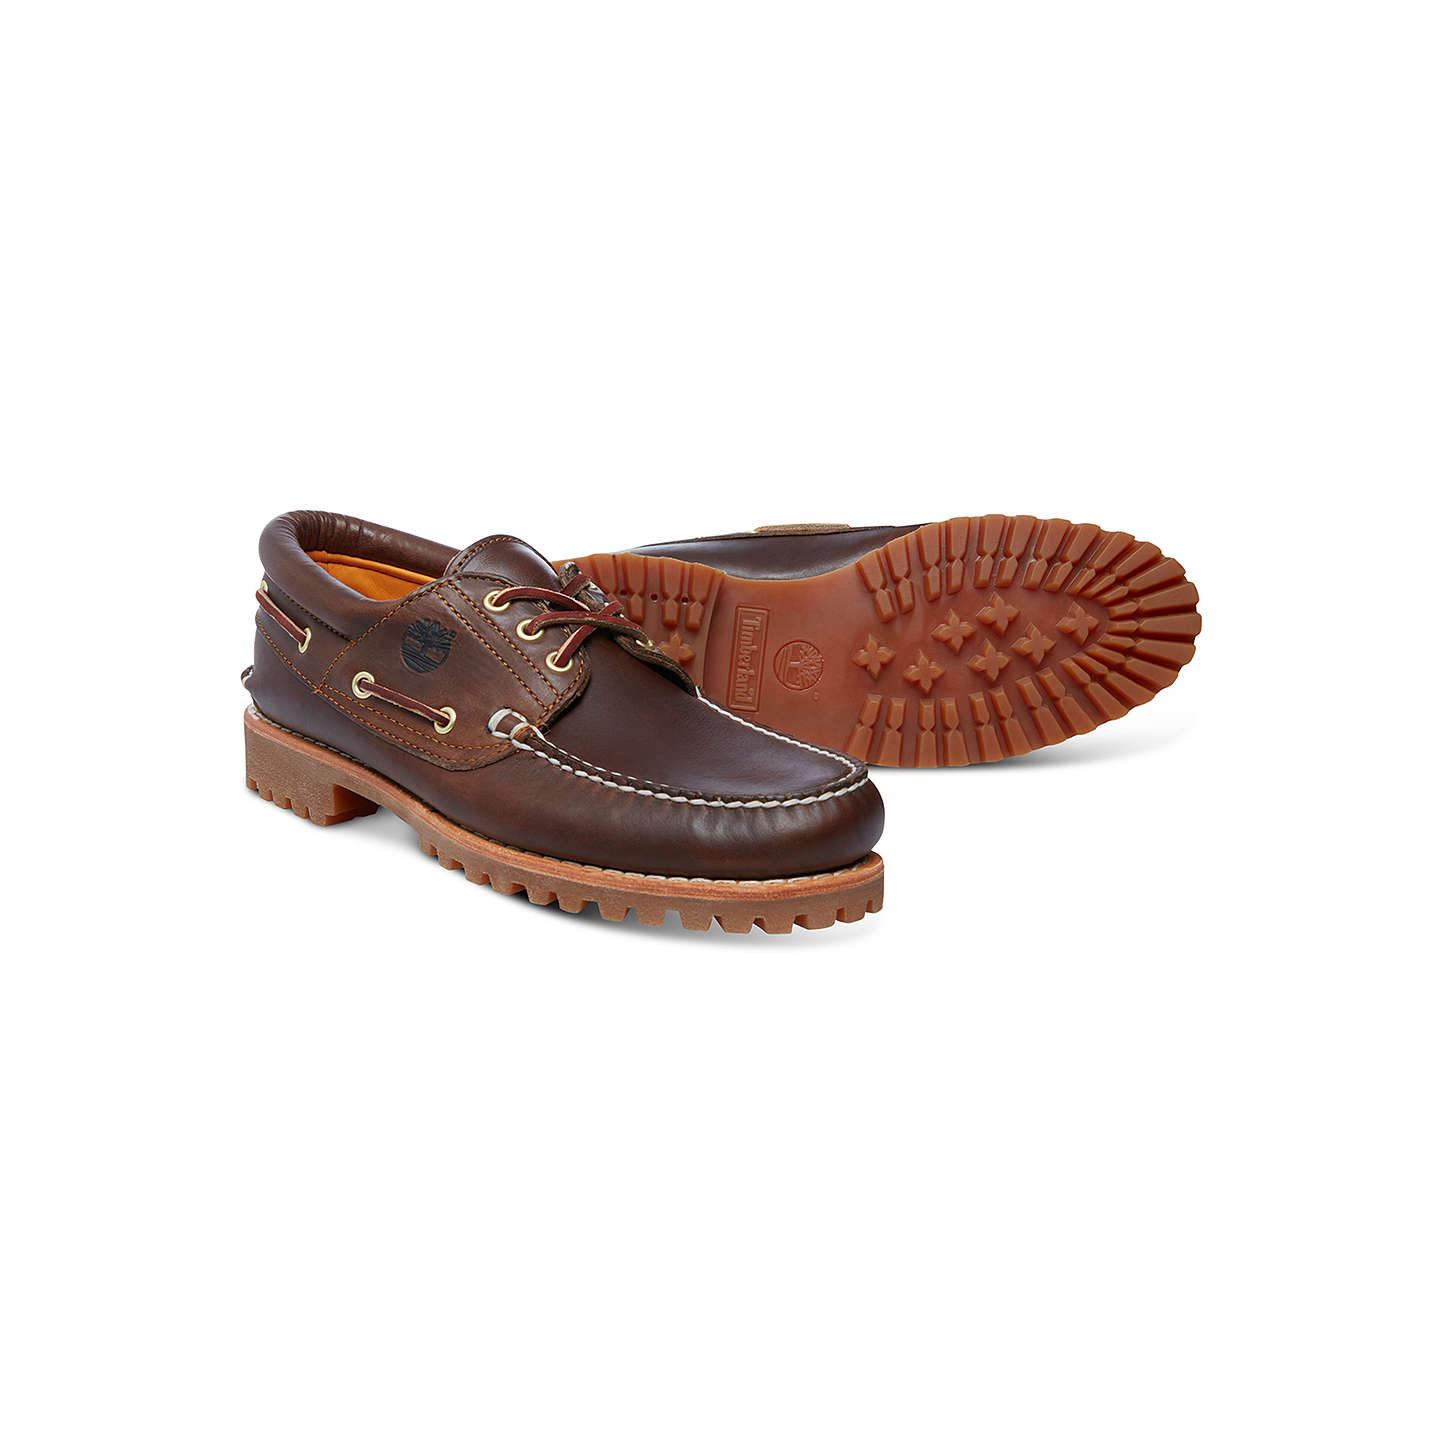 BuyTimberland Handsewn Boat Shoes, Brown, 7 Online at johnlewis.com